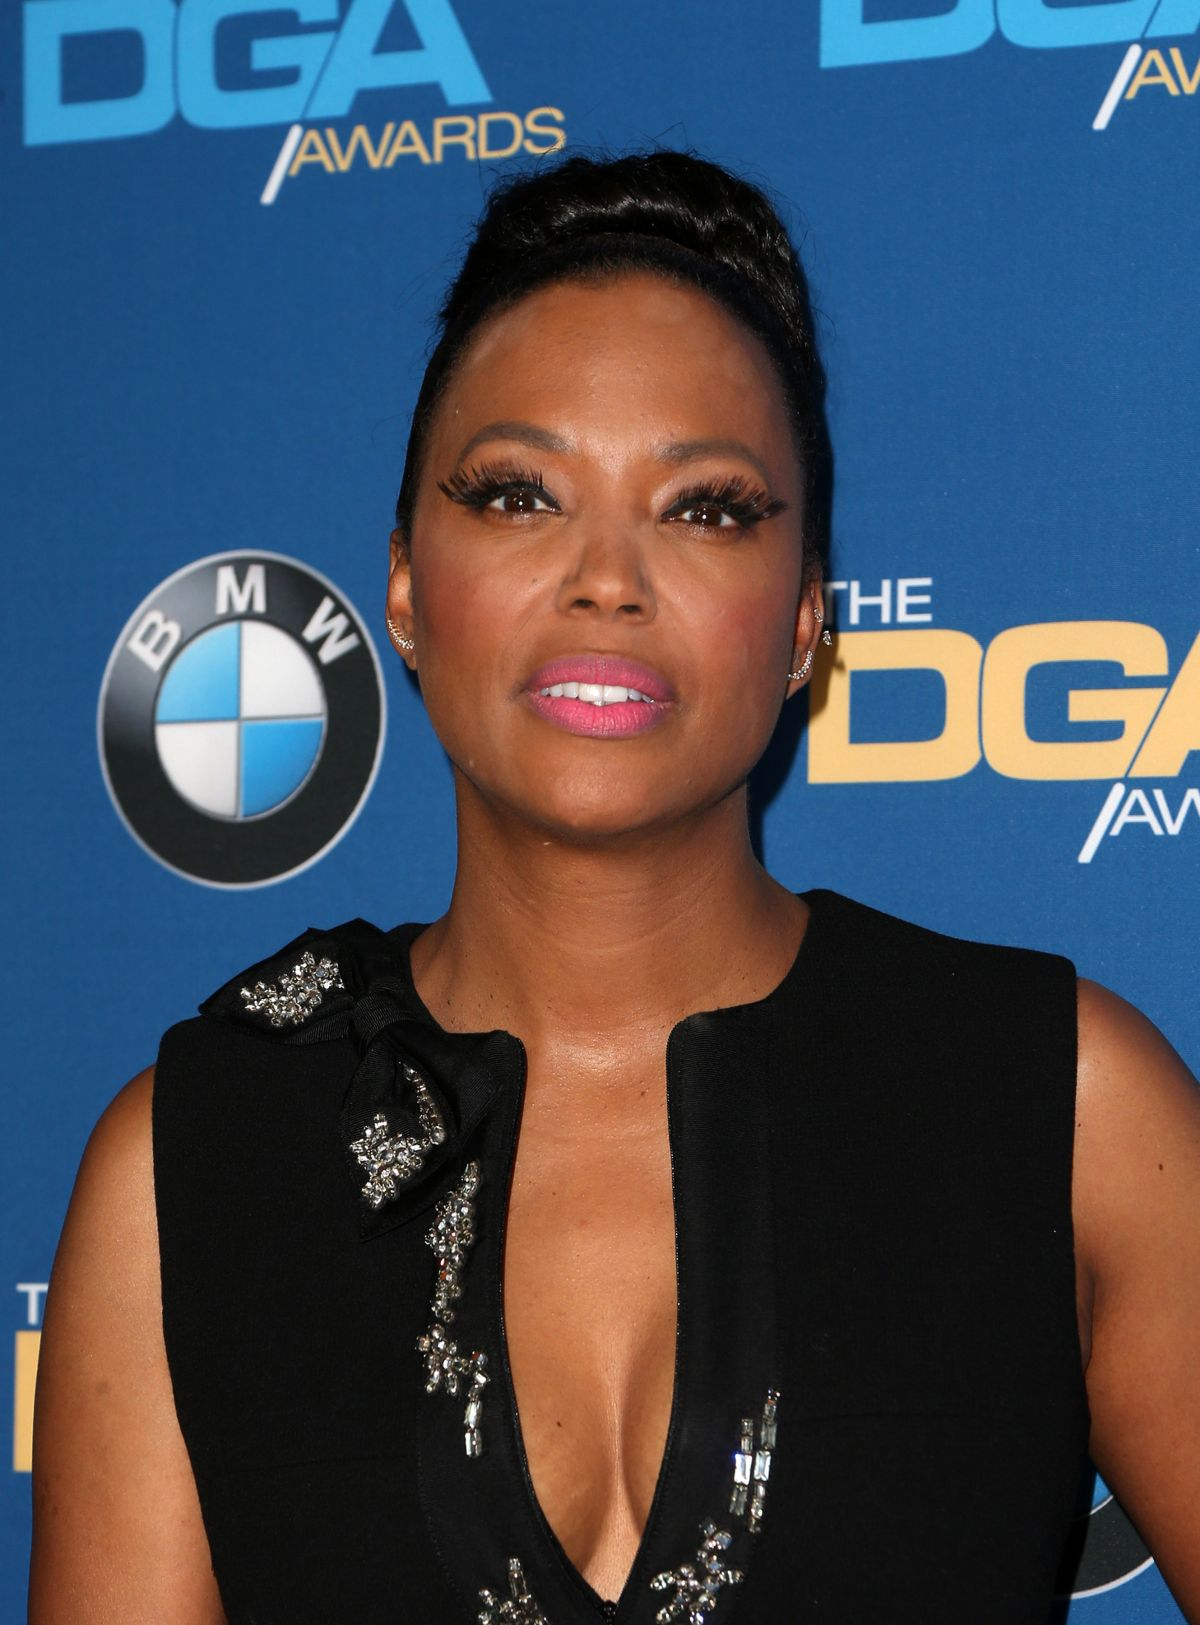 aisha-tyler-at-69th-annual-directors-guild-of-america-awards-in-beverly-hills-02-04-2017_6.jpg